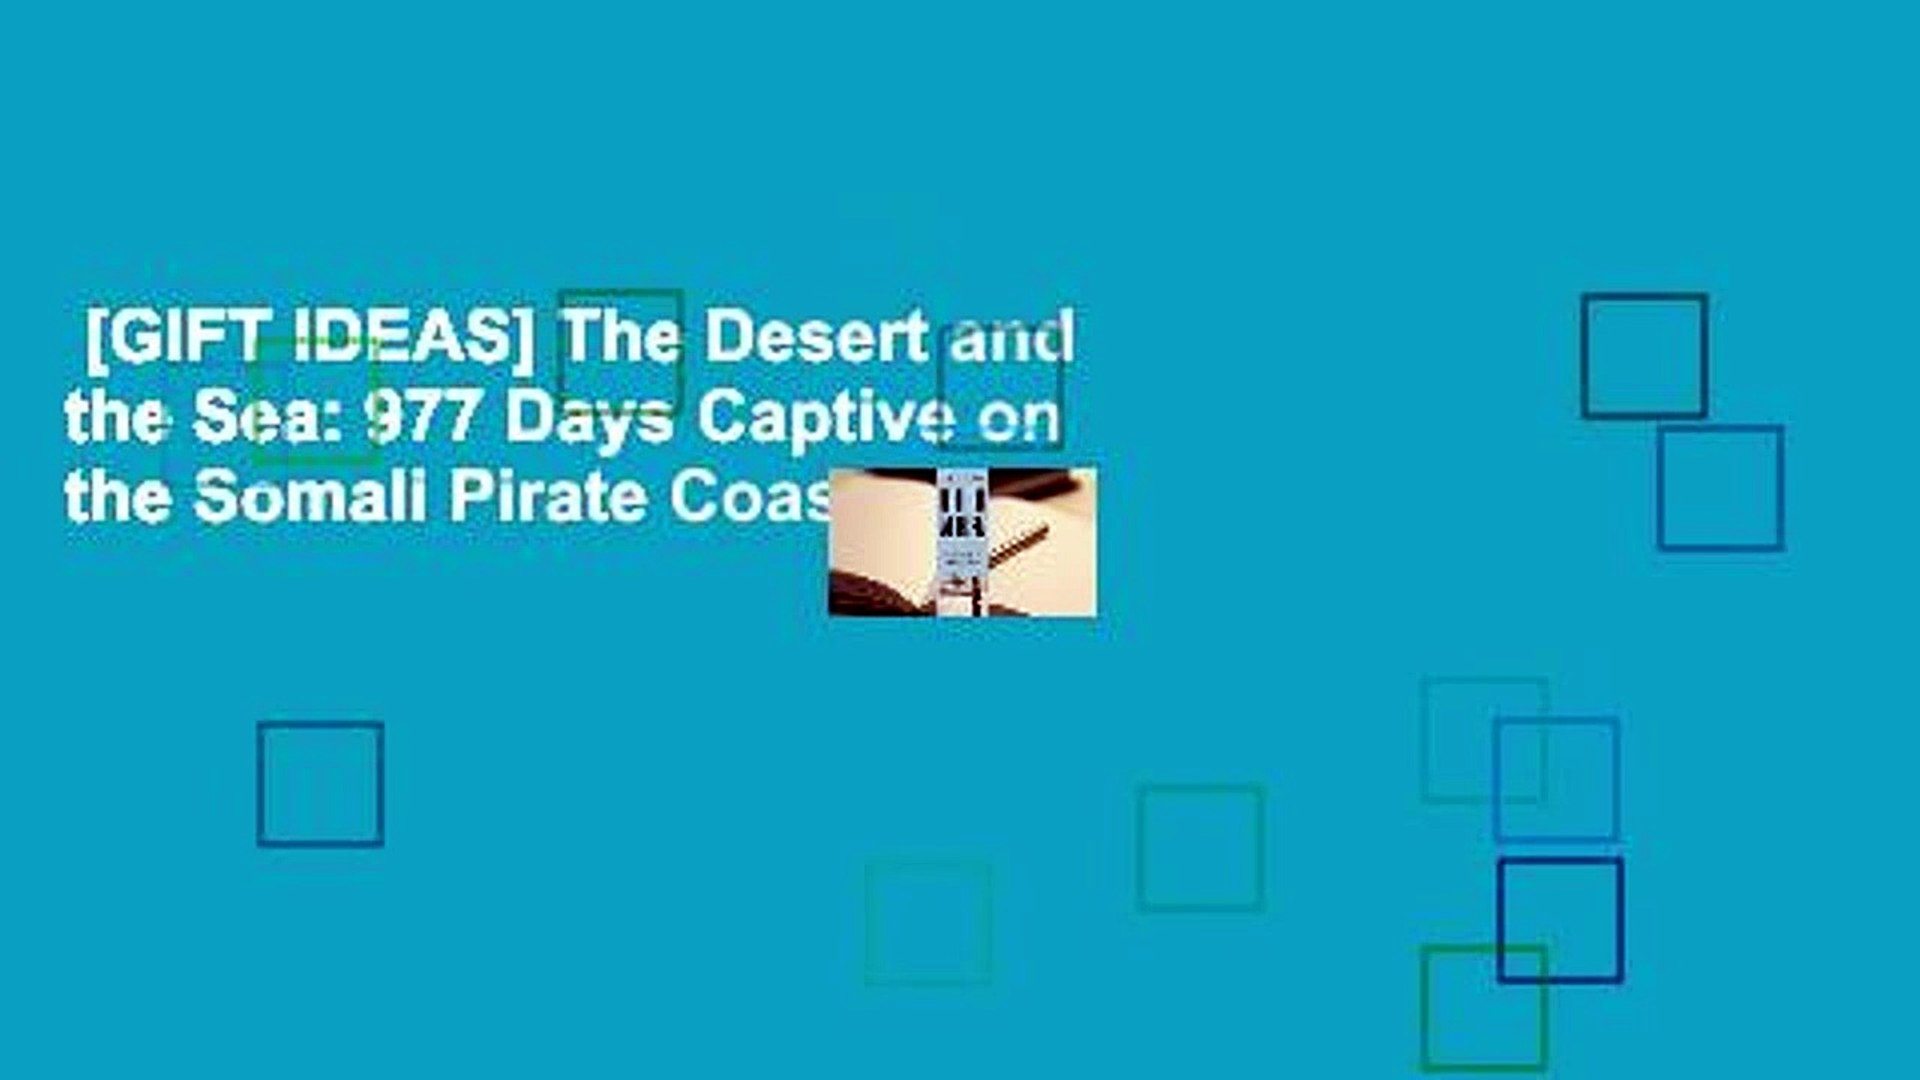 [GIFT IDEAS] The Desert and the Sea: 977 Days Captive on the Somali Pirate Coast